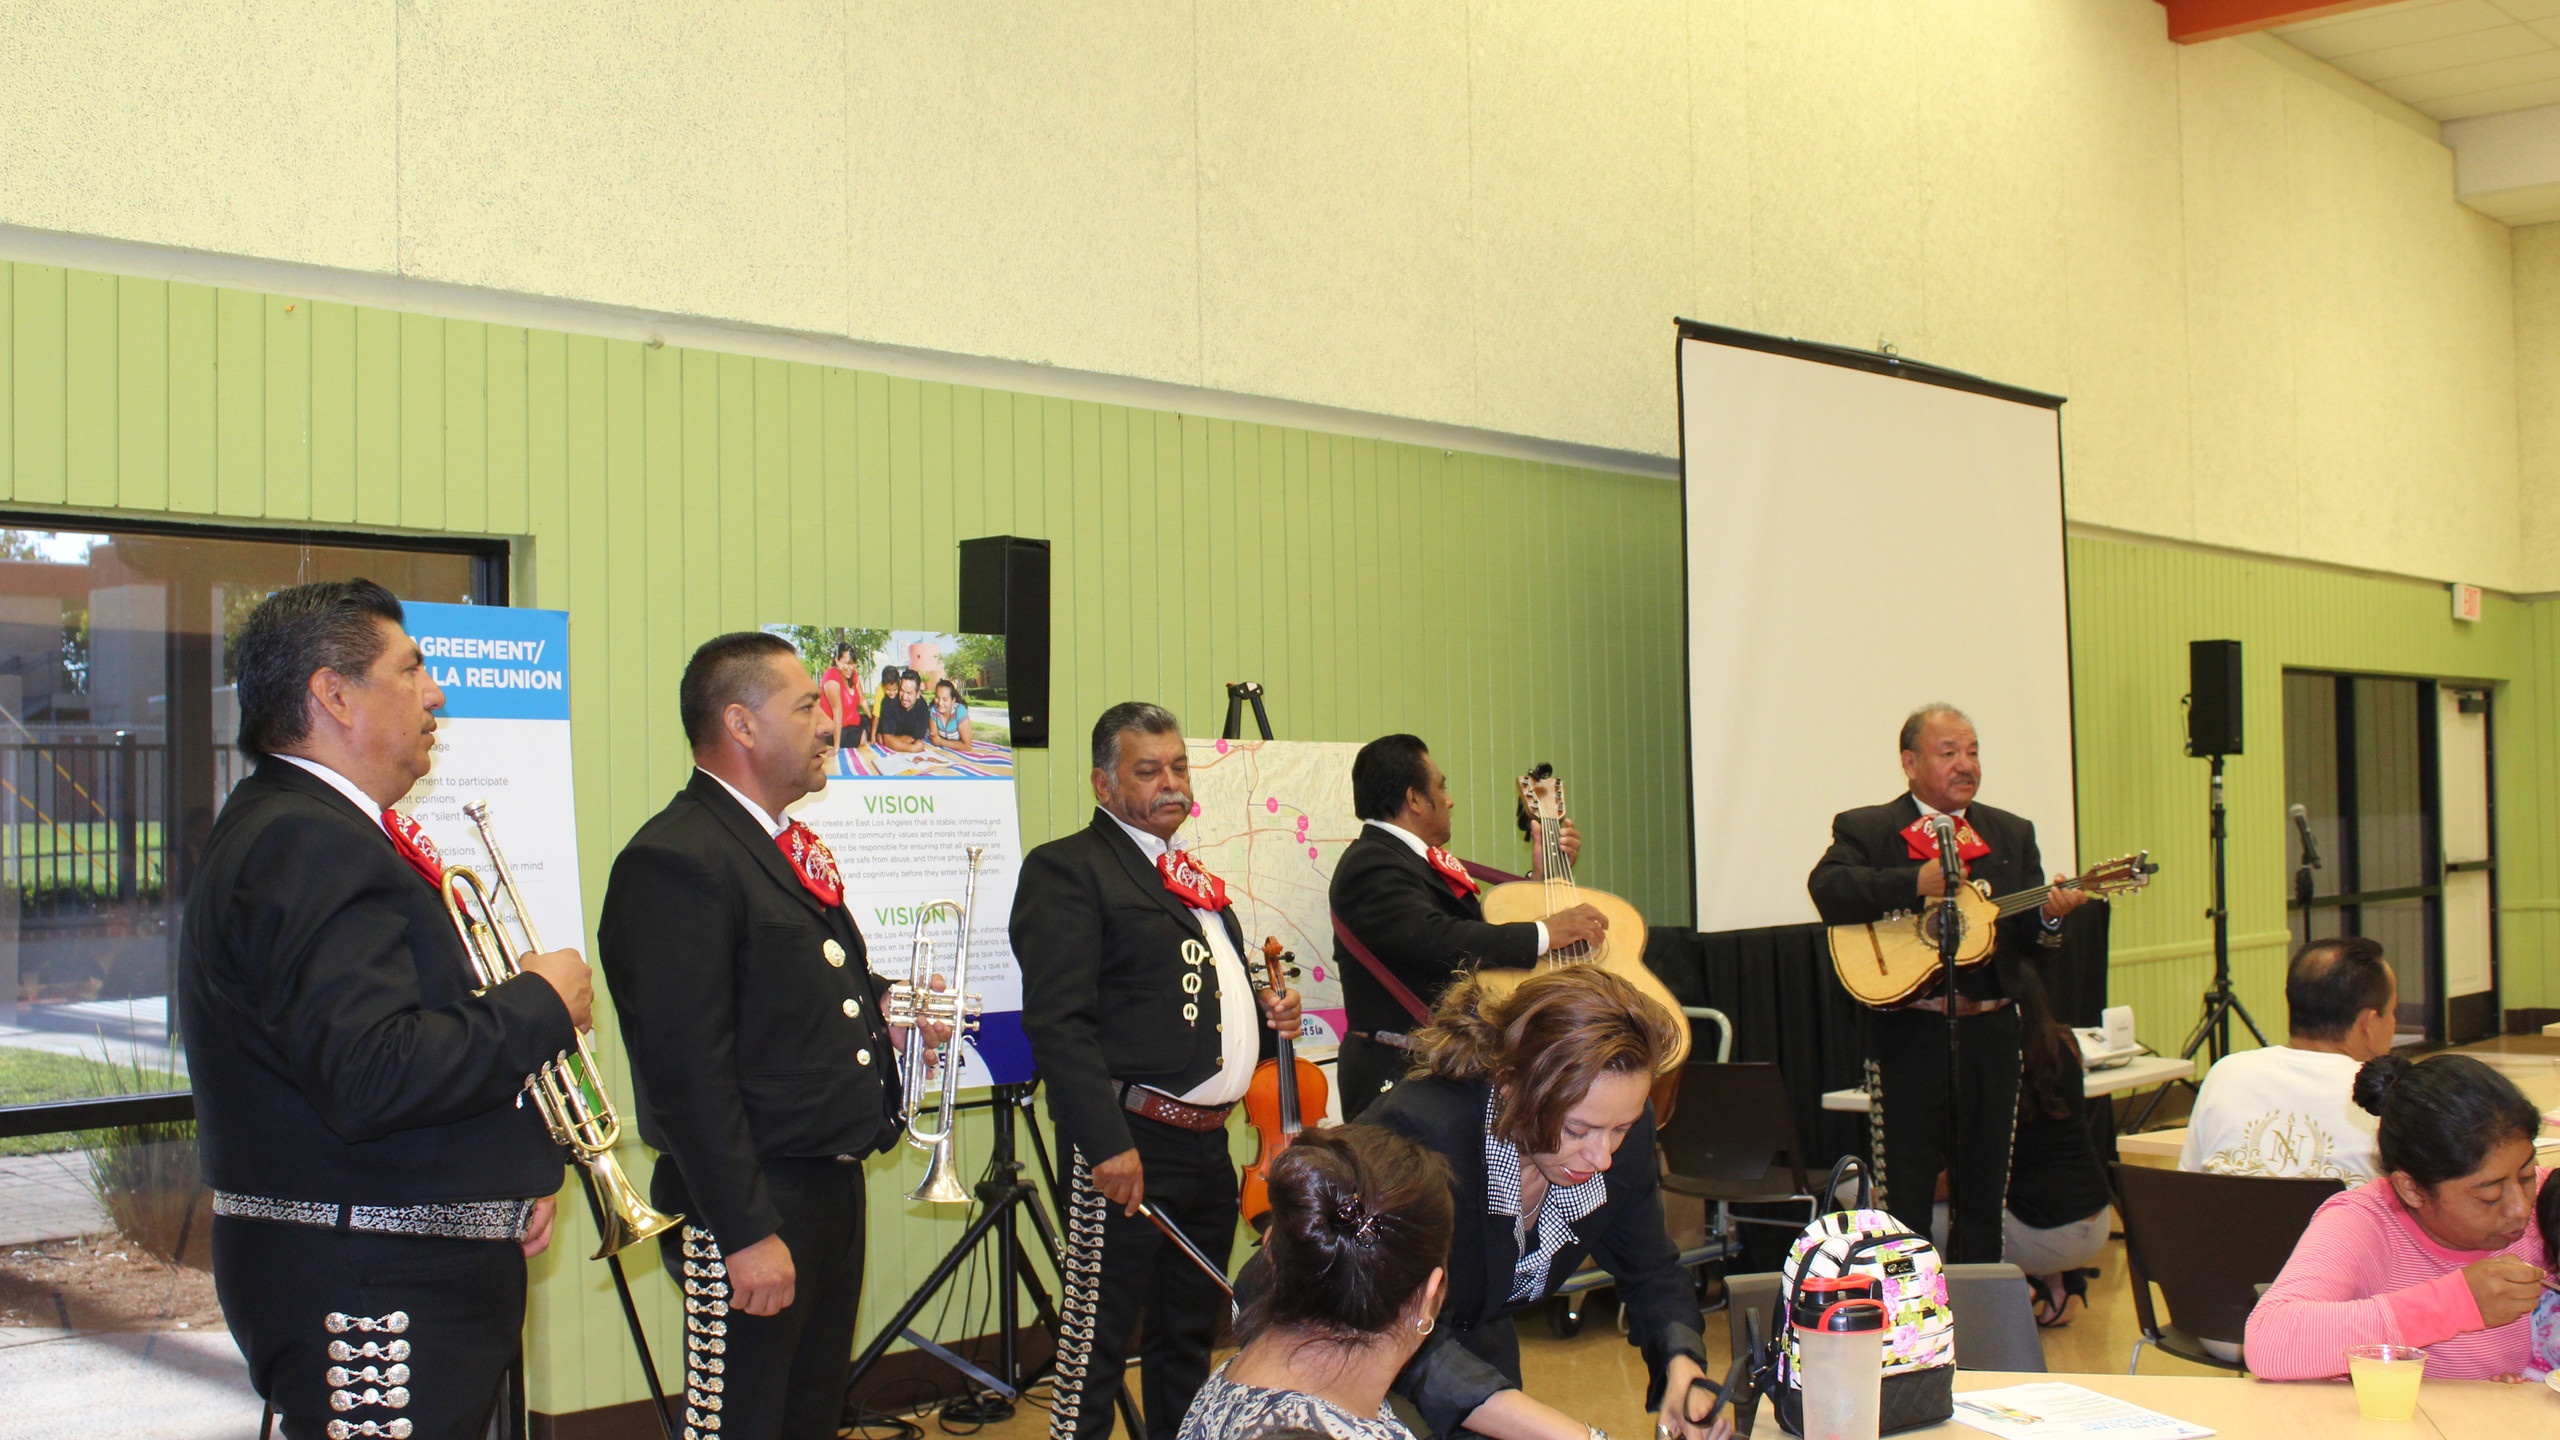 Mariachi helping residents celebrate the launch